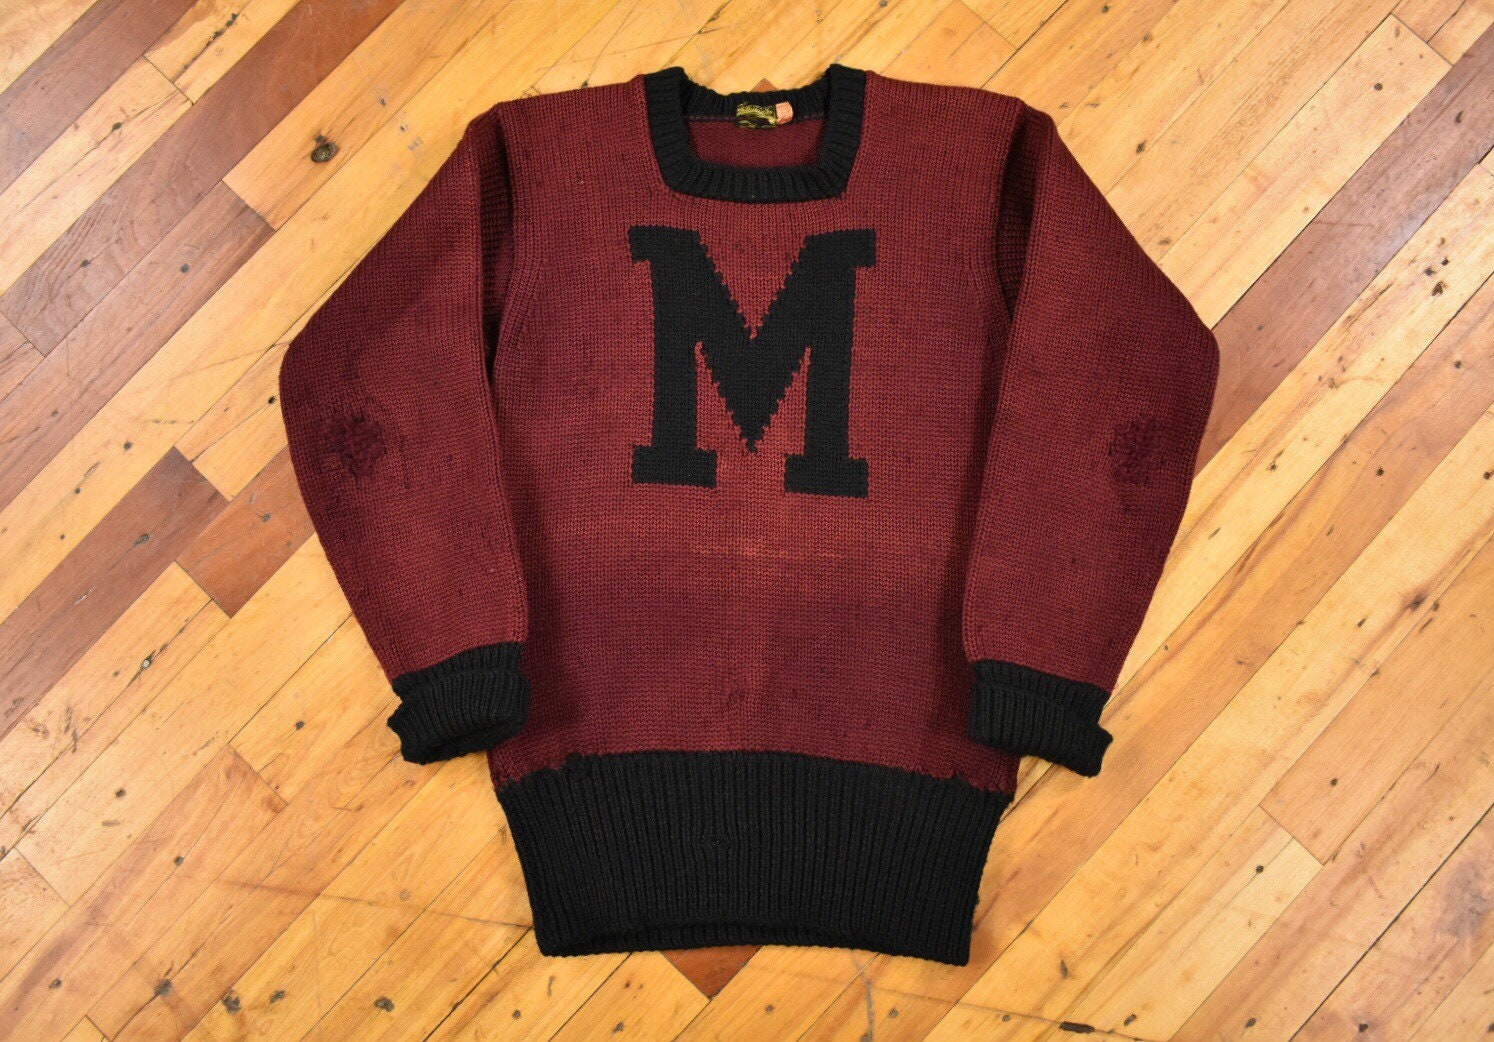 New 1930s Mens Fashion Ties 1930S Maine Sweater XsS Two Tone Letter Crewneck Knit Wool $20.00 AT vintagedancer.com